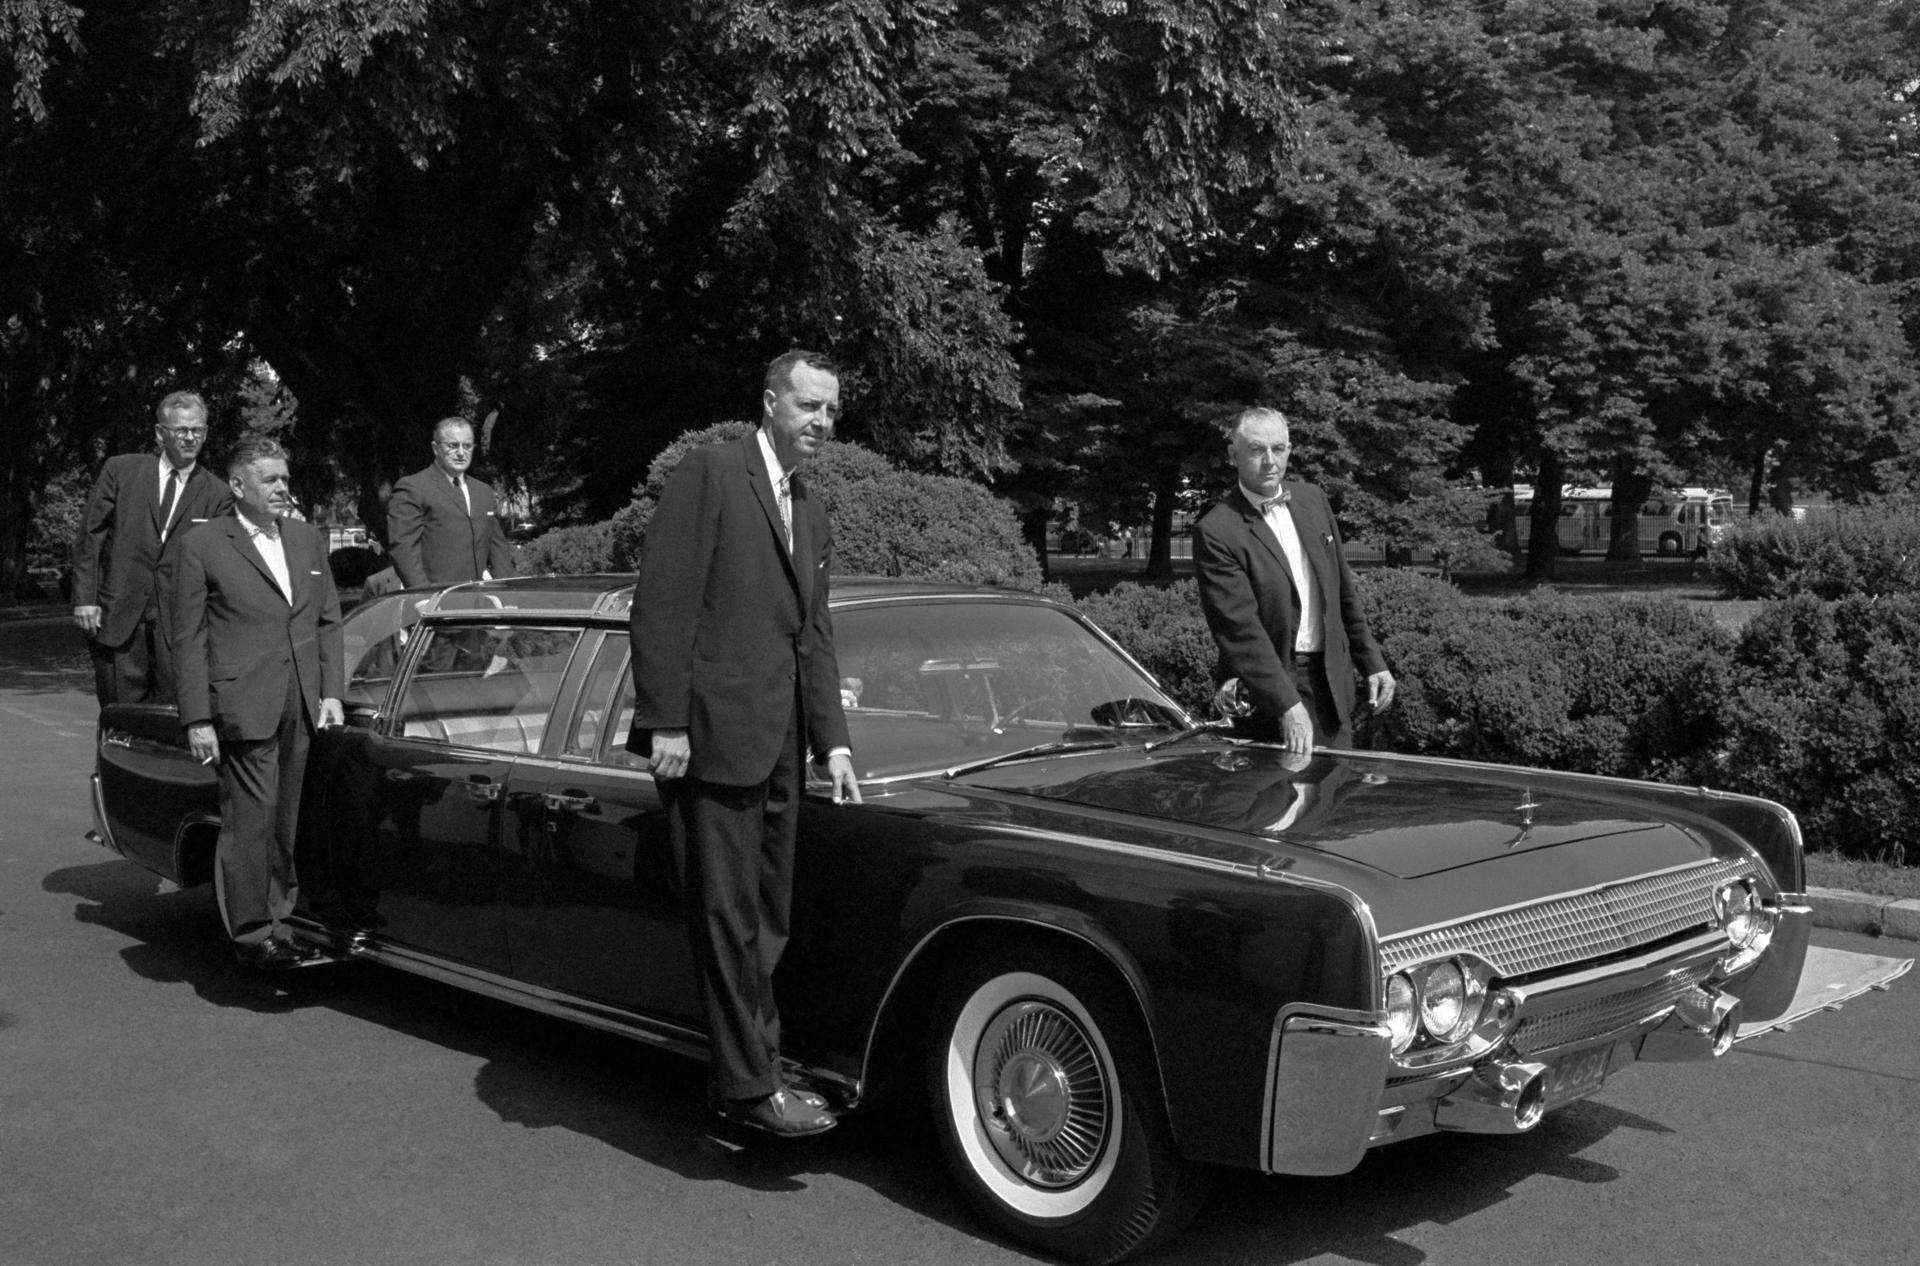 3be61d6fd76a2e82be017eea22d2da40 Fascinating Lincoln Continental Used In Hit and Run Cars Trend